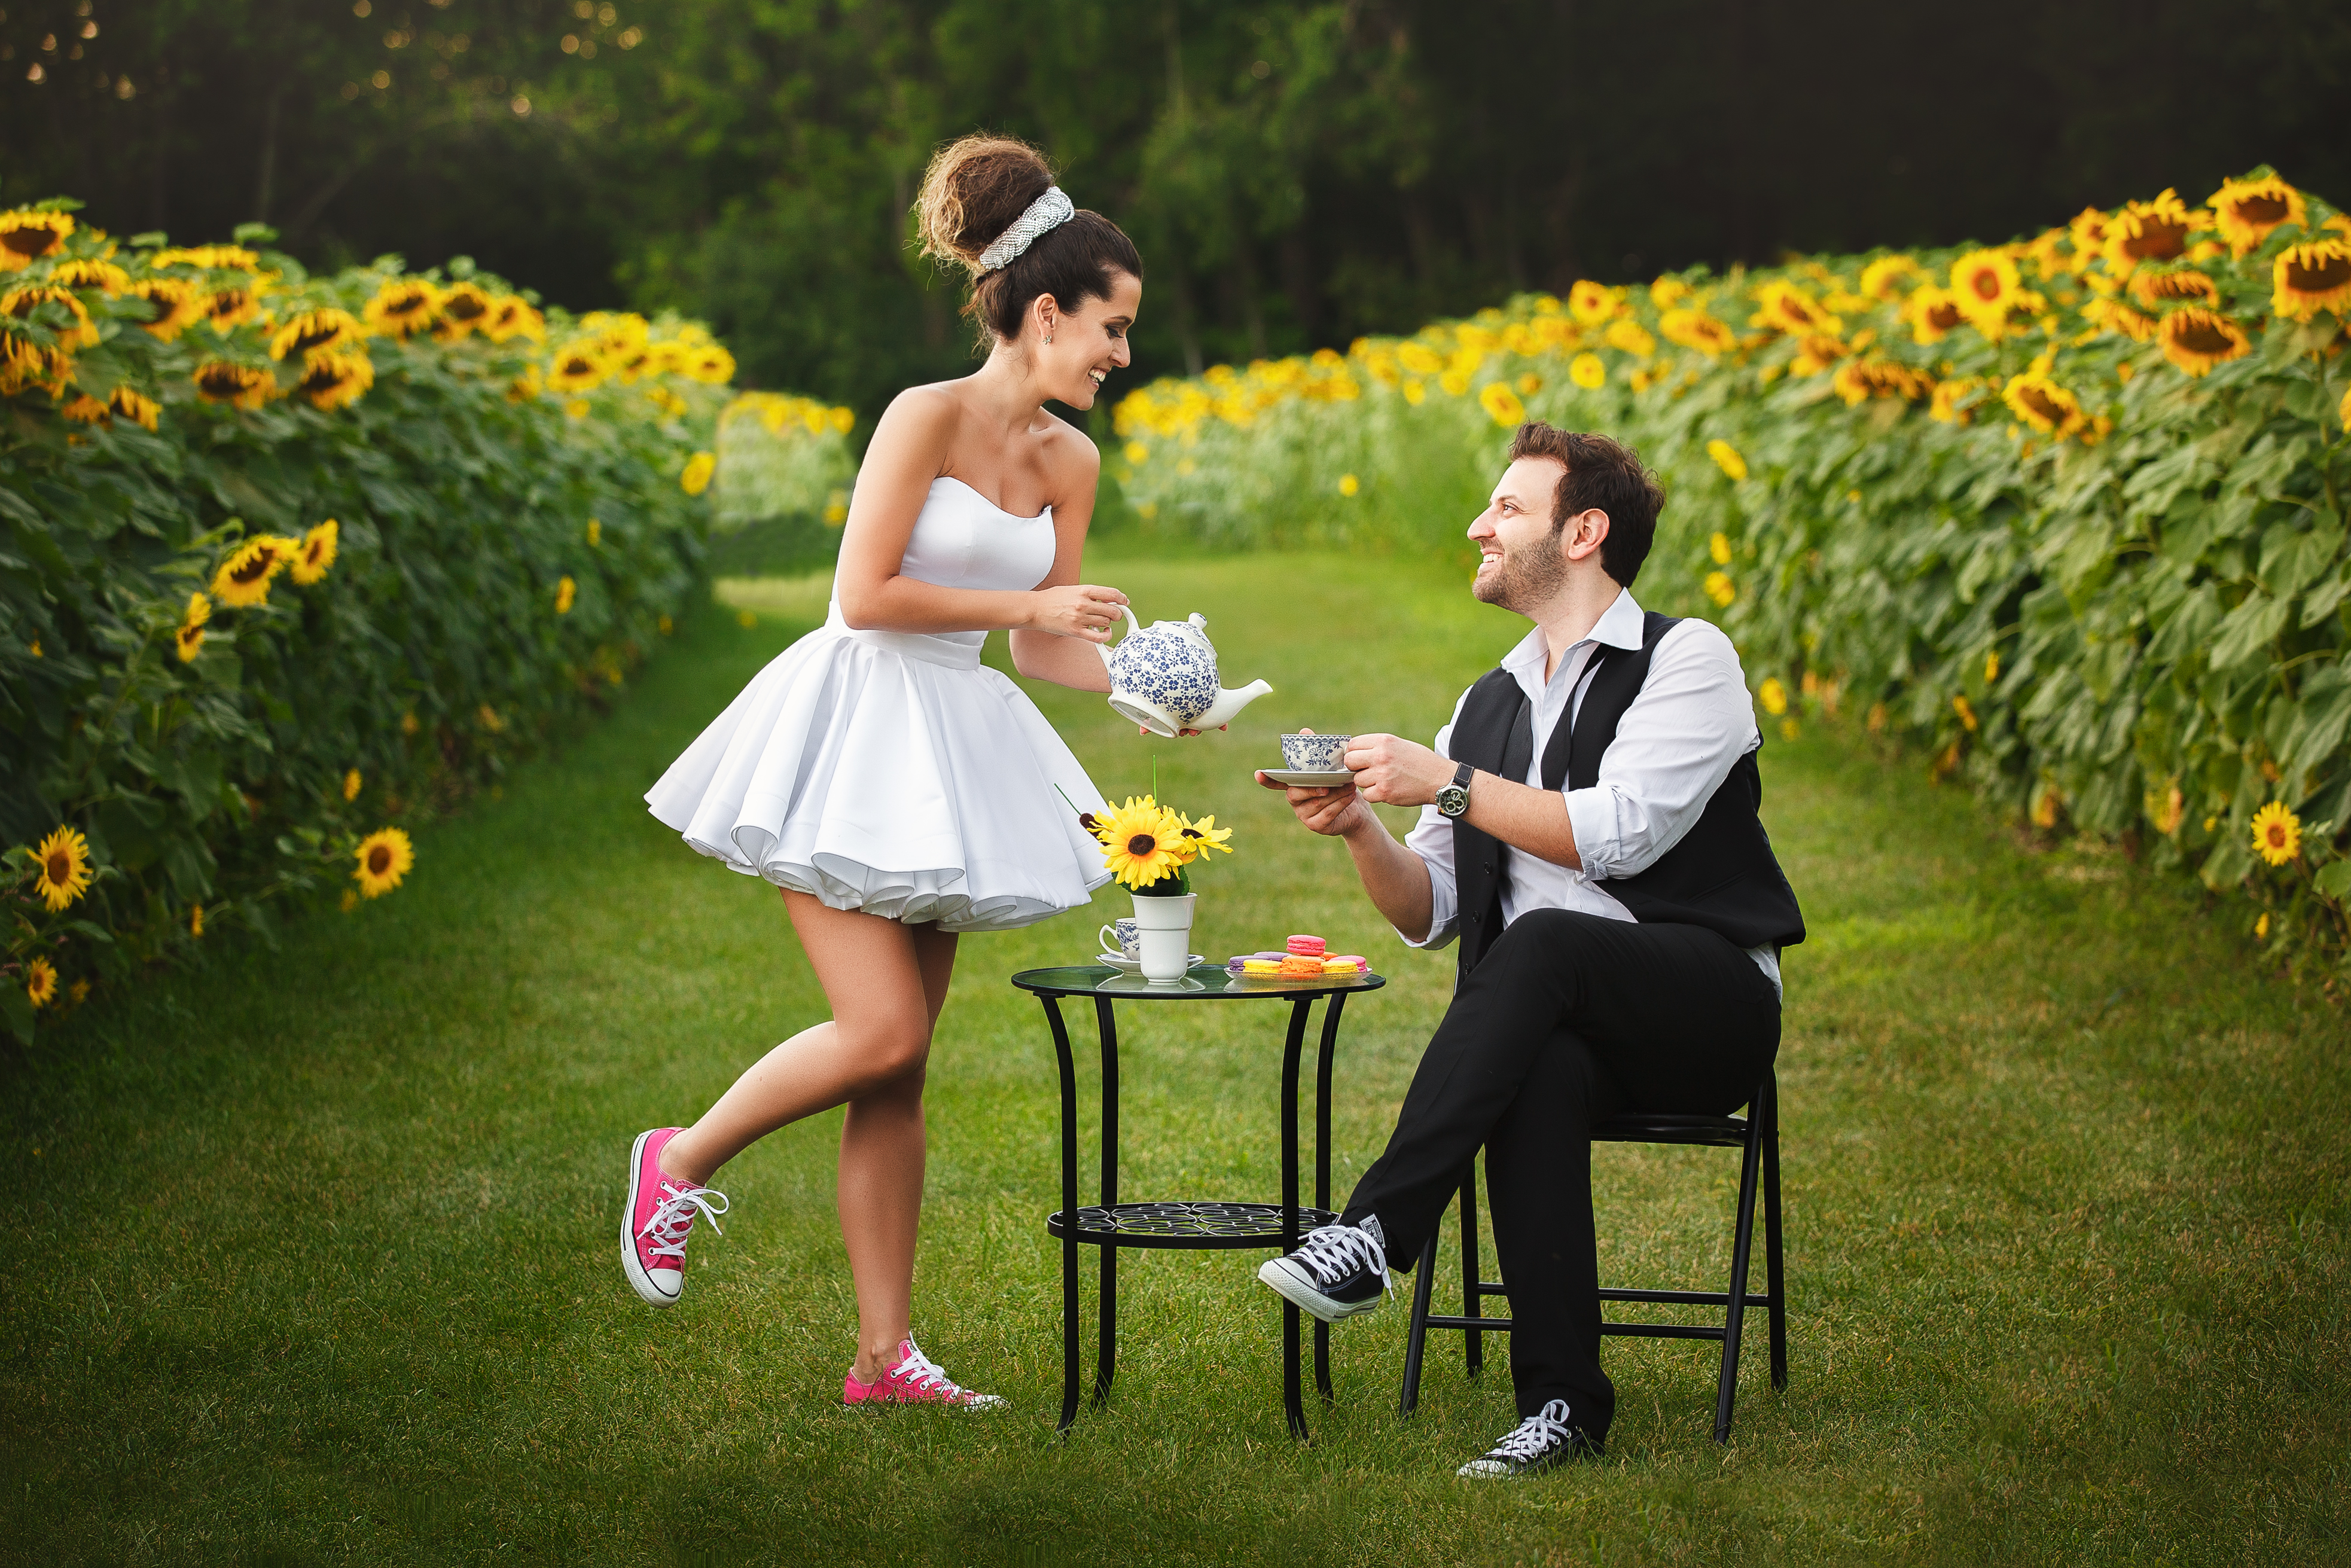 weddingnature  photo shoot ideas